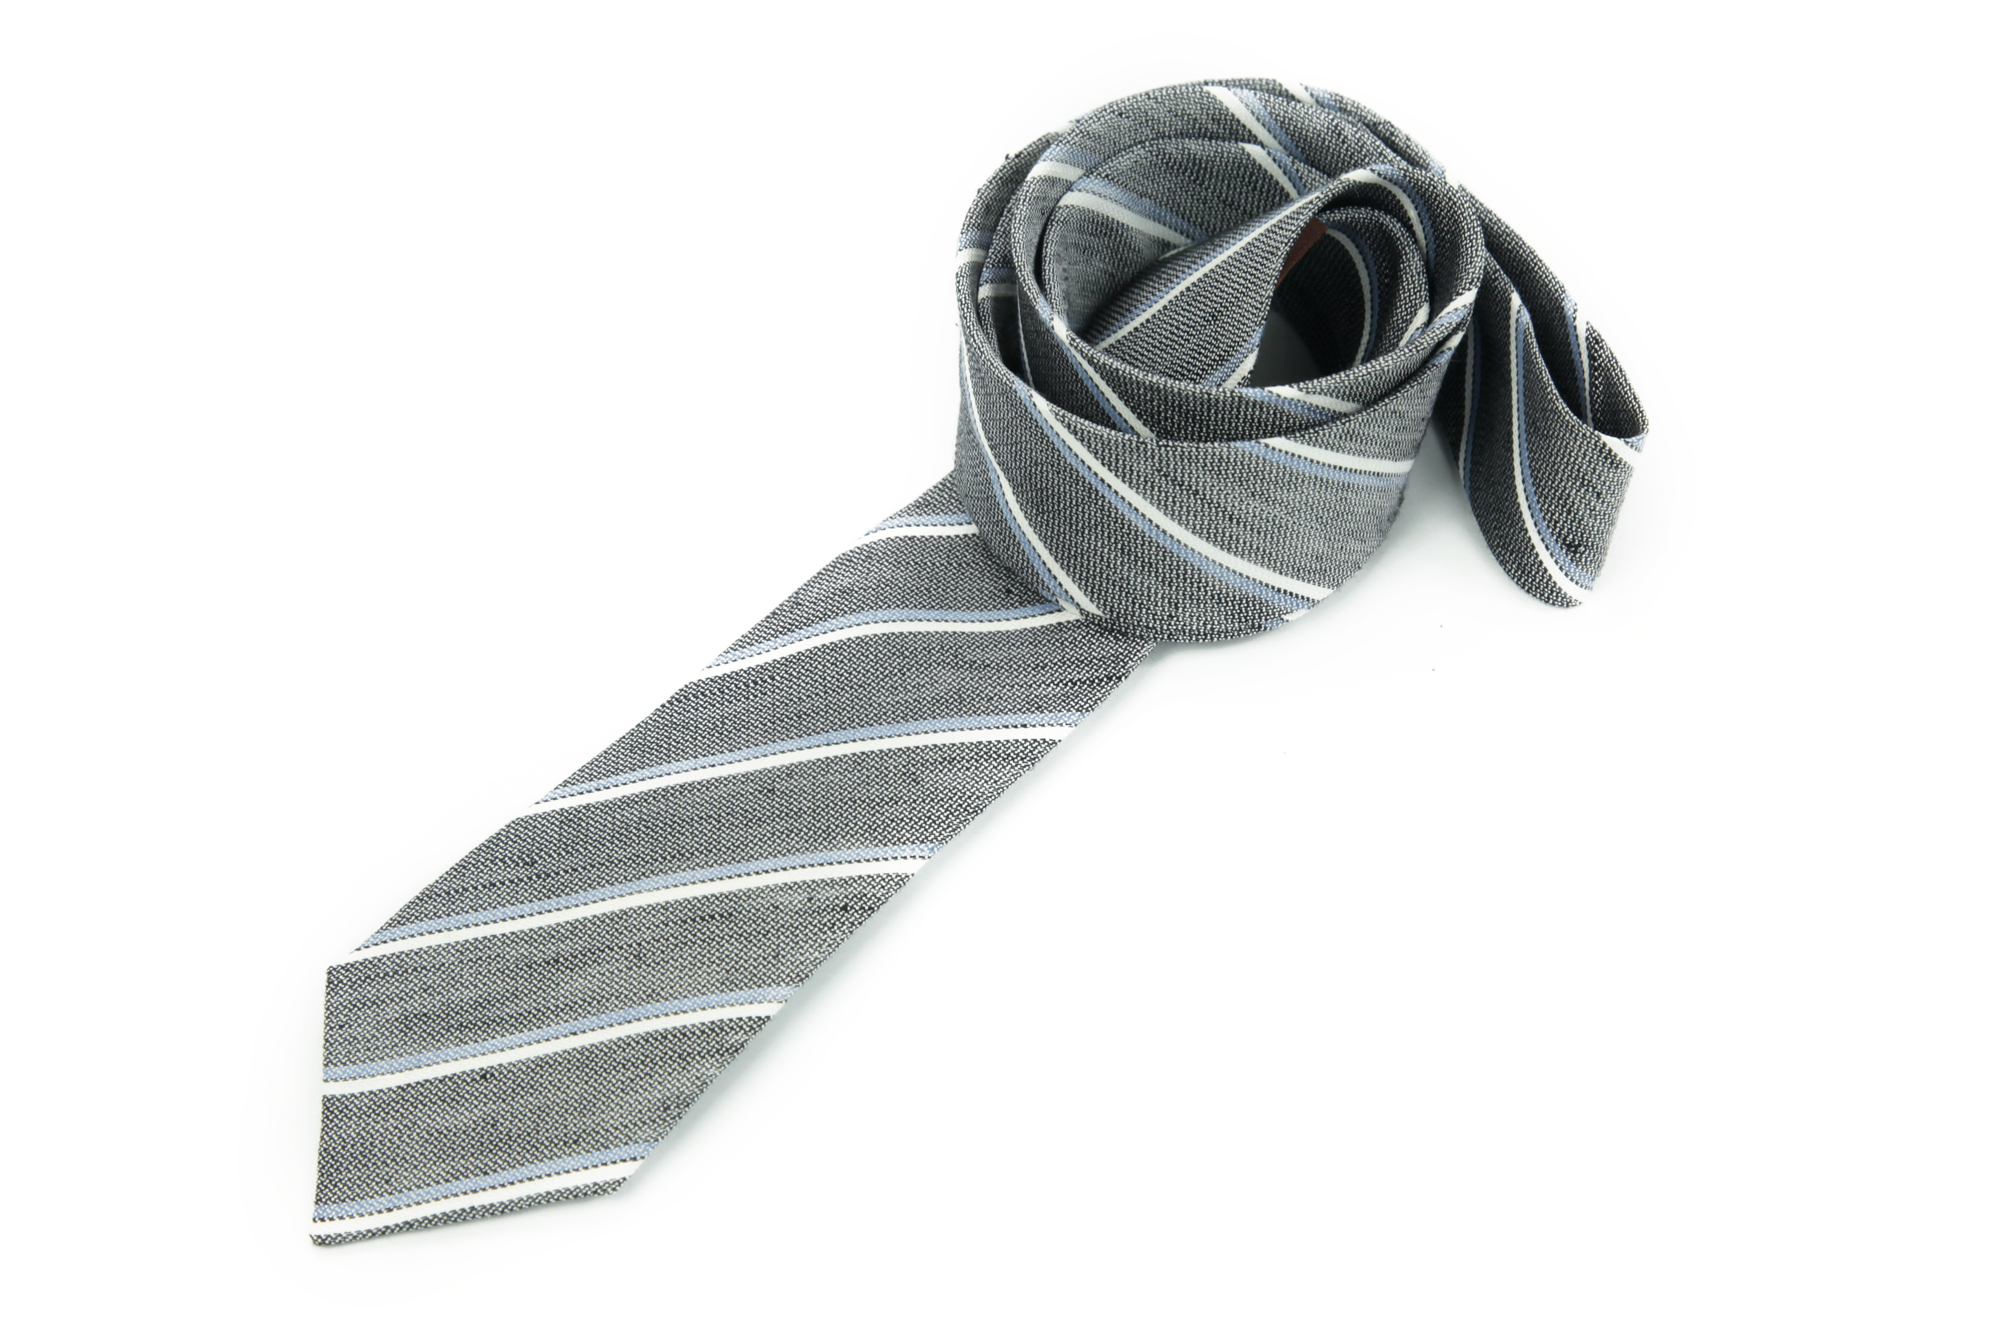 The Bernhard Necktie